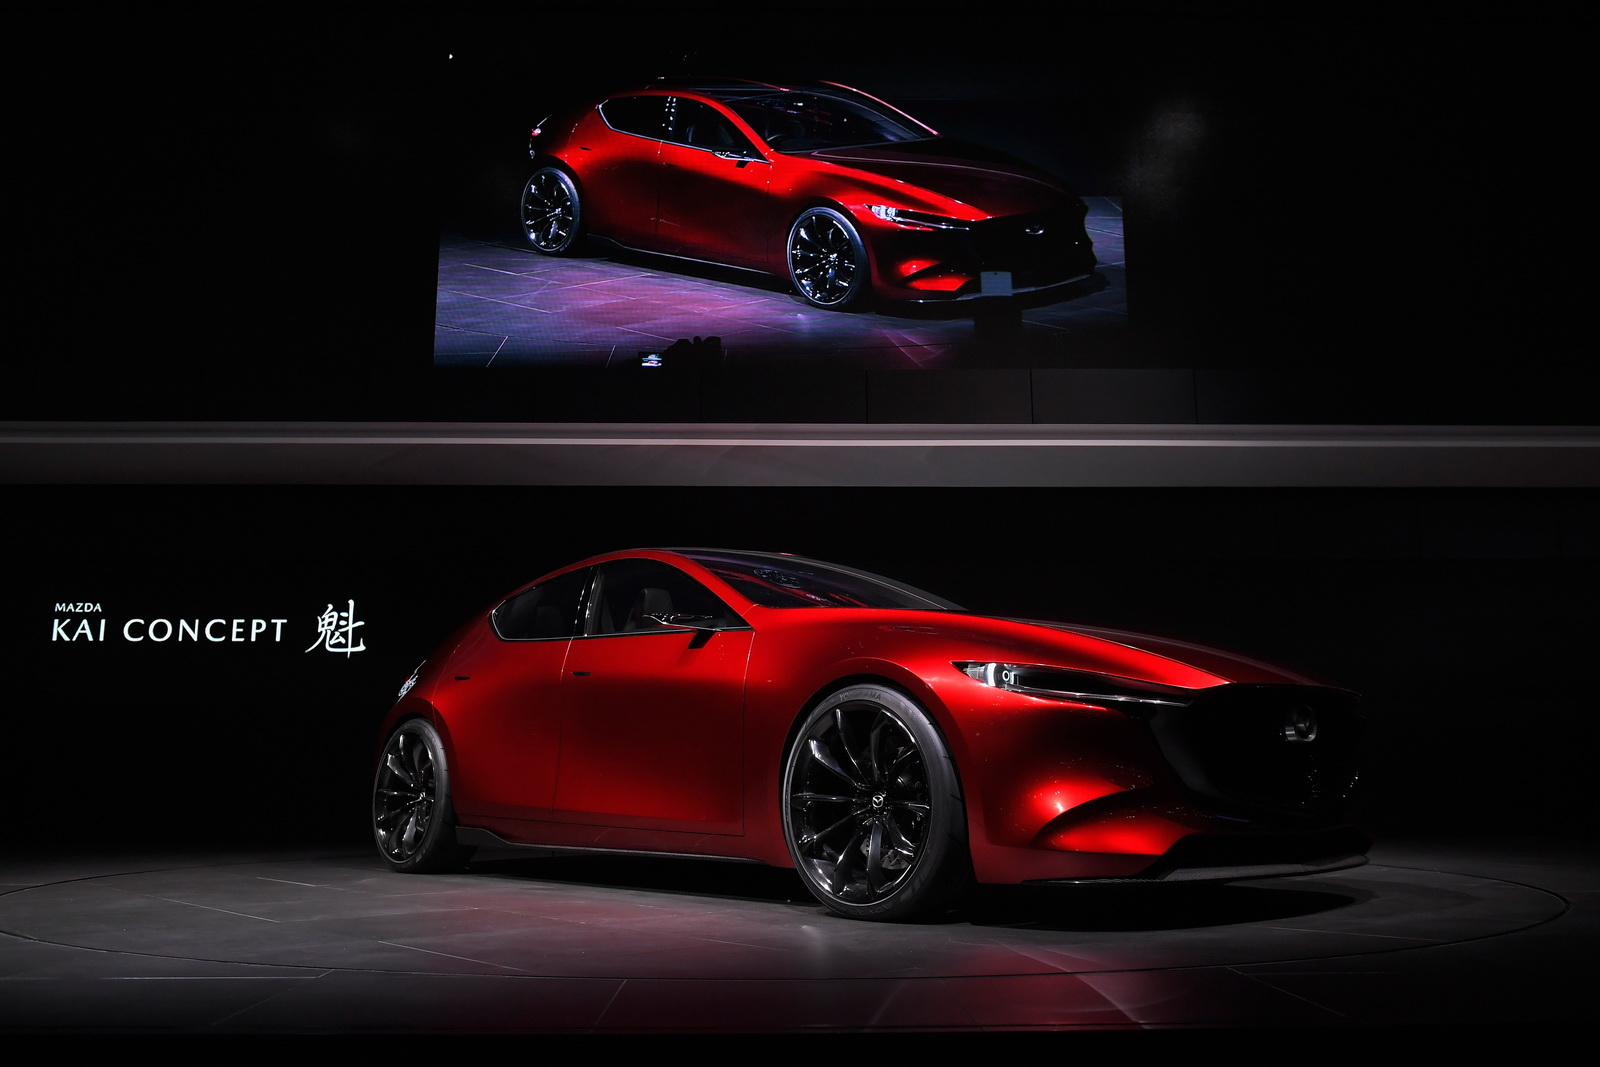 TOKYO, JAPAN - OCTOBER 25:  Mazda Kai Concept is unveiled by Mazda Motor Co CEO Masamichi Kogai at the Mazda Motor Co booth during the Tokyo Motor Show at Tokyo Big Sight on October 25, 2017 in Tokyo, Japan.  (Photo by Koki Nagahama/Getty Images for Mazda Motor Co)